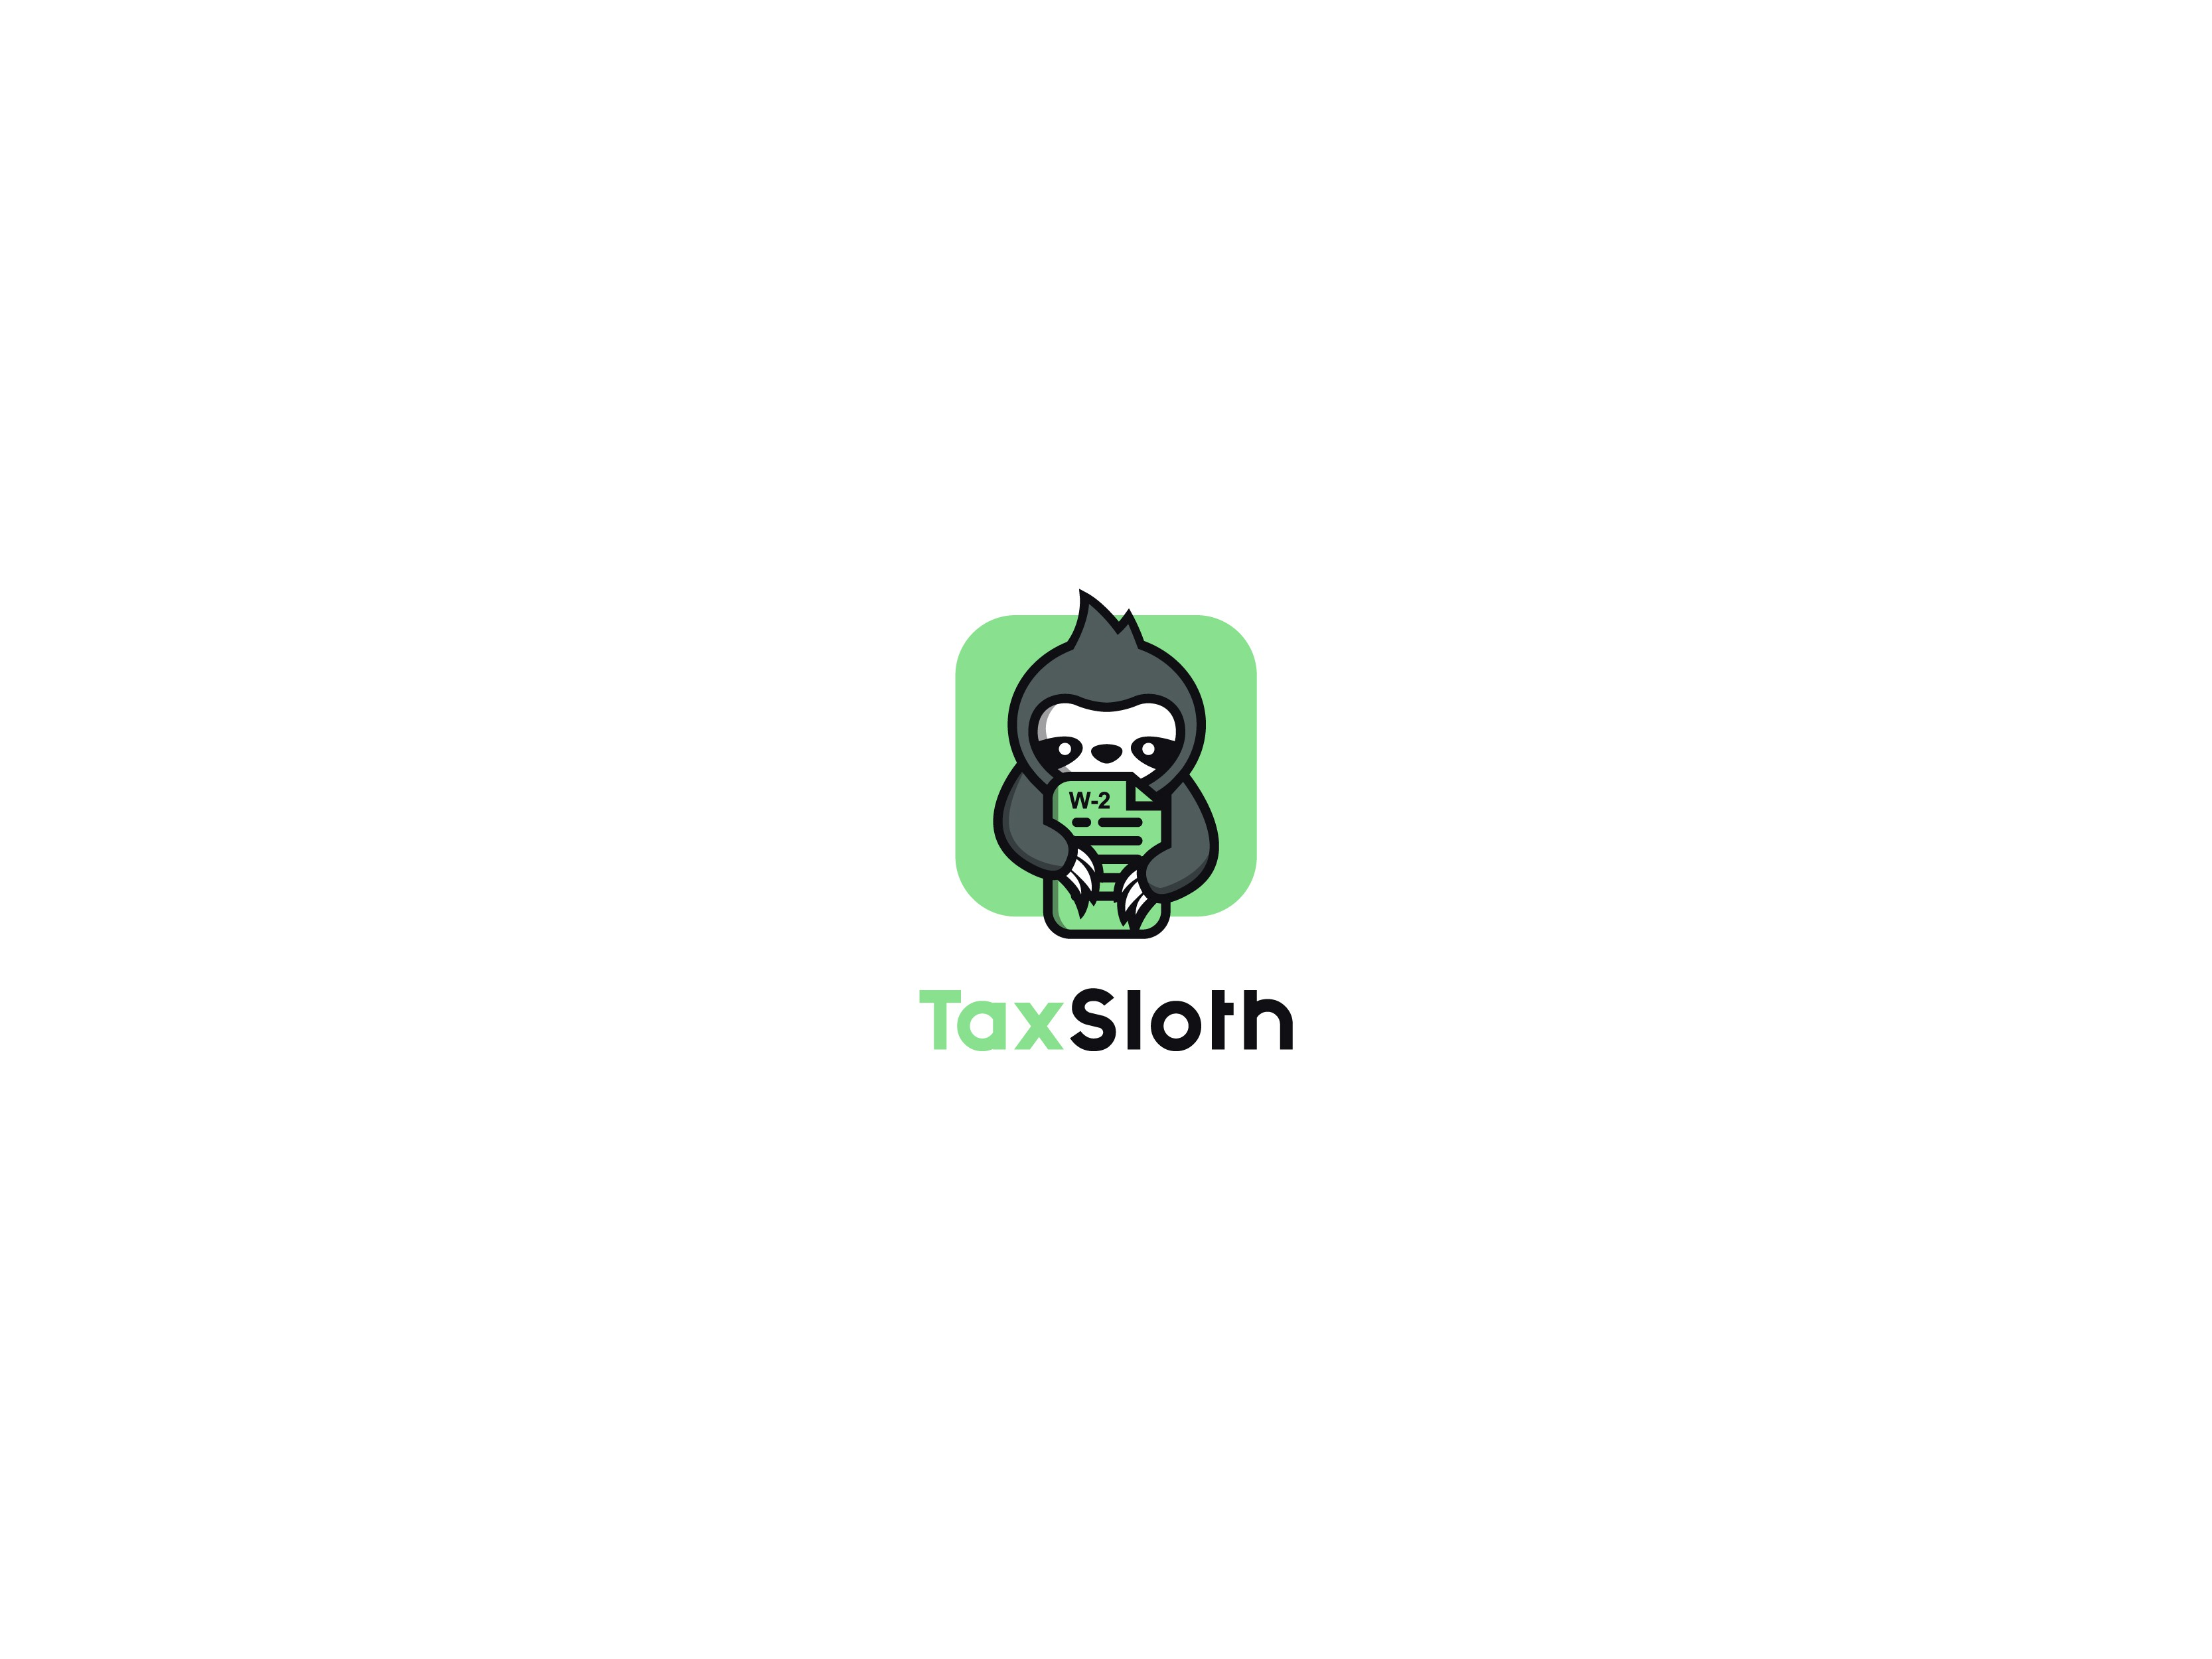 Create a sloth illustration for my online taxes business